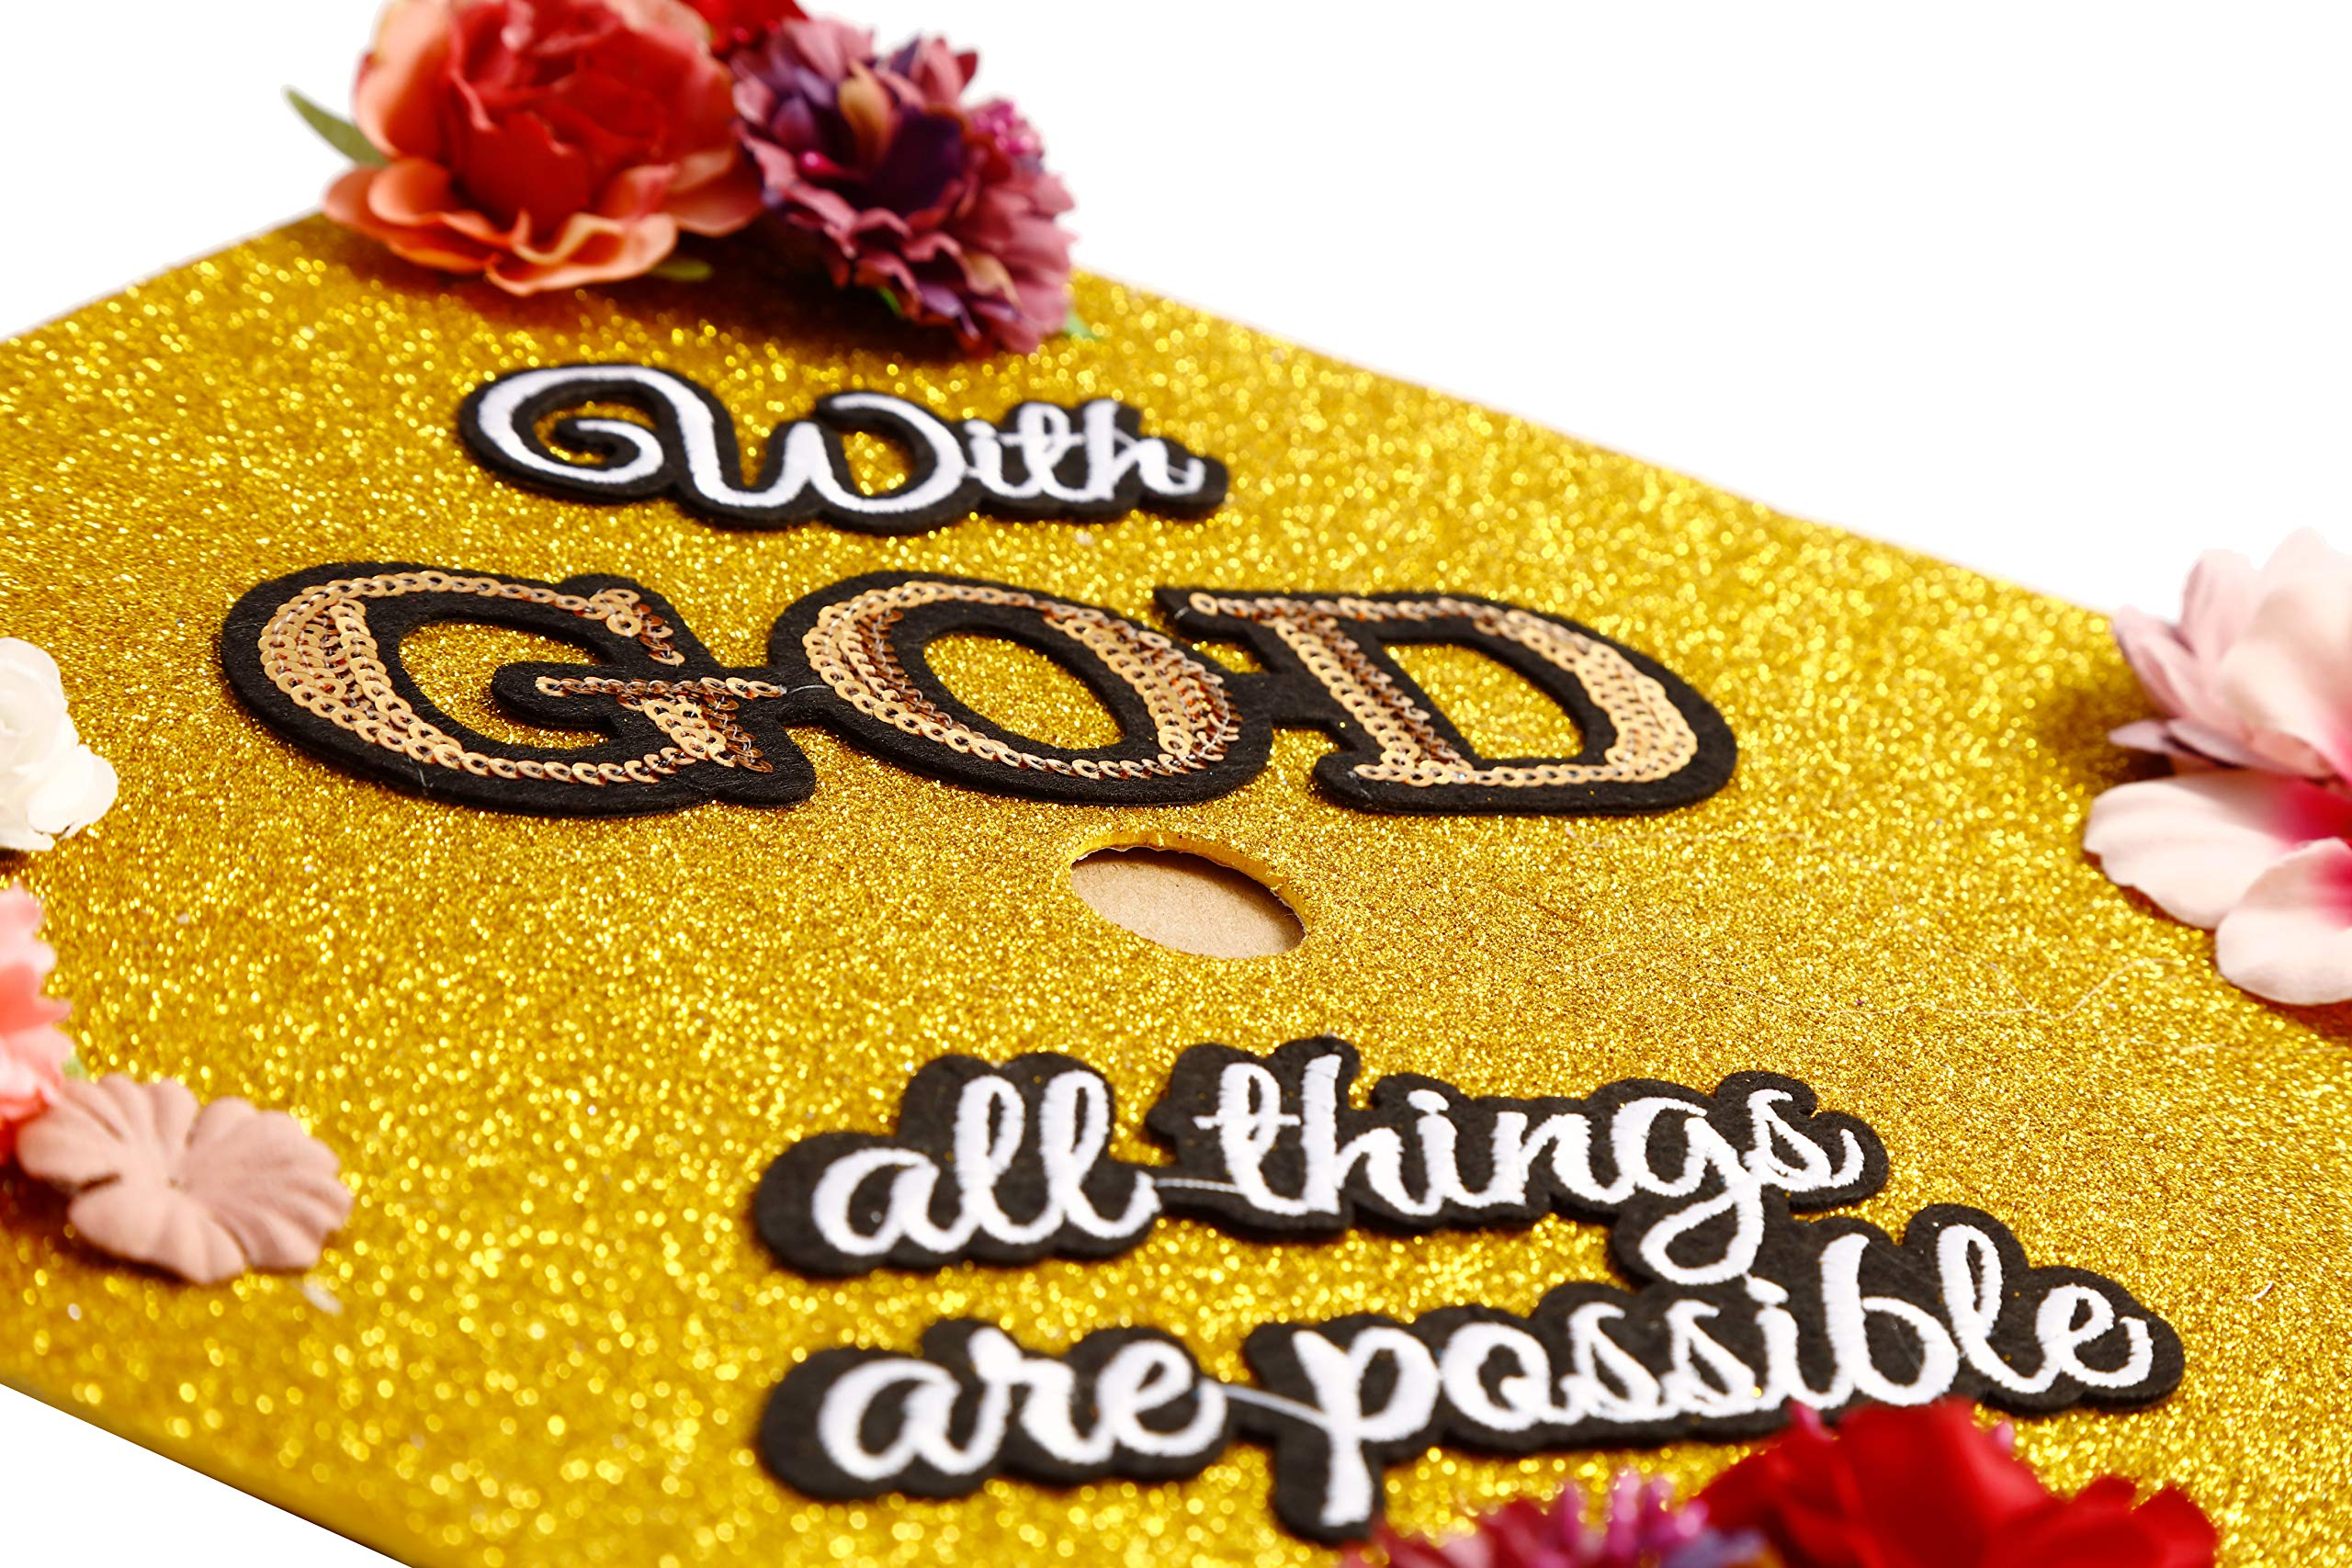 GradWYSE Handmade Graduation Cap Topper Graduation Gifts Graduation Cap Decorations, with God All Things are Possible Gold by GRADWYSE (Image #2)